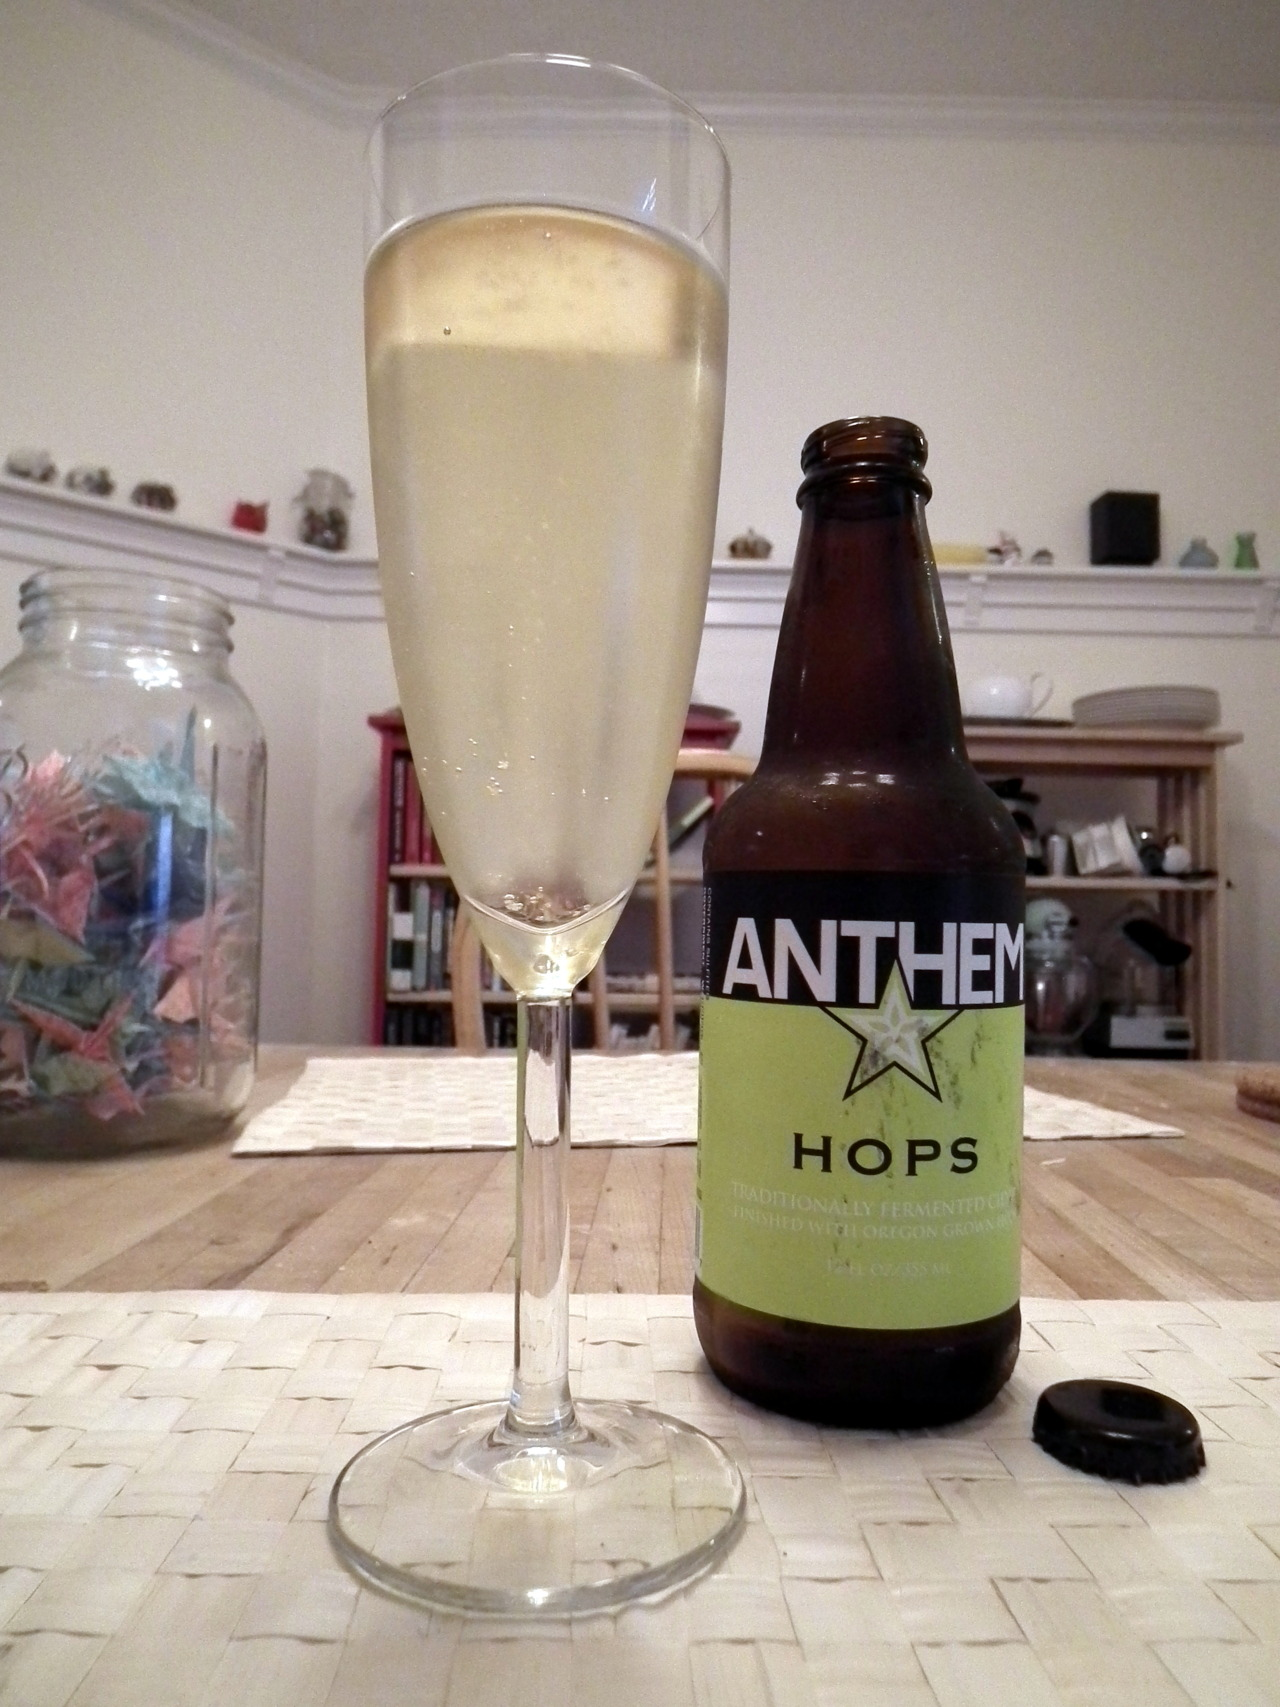 At the farmer's market last week we picked up a few Anthem ciders. They make a pear cider and this an apple cider finished with hops. It's actually not as weird as you might think. The hops add a little earthiness that compliments the dry finish.